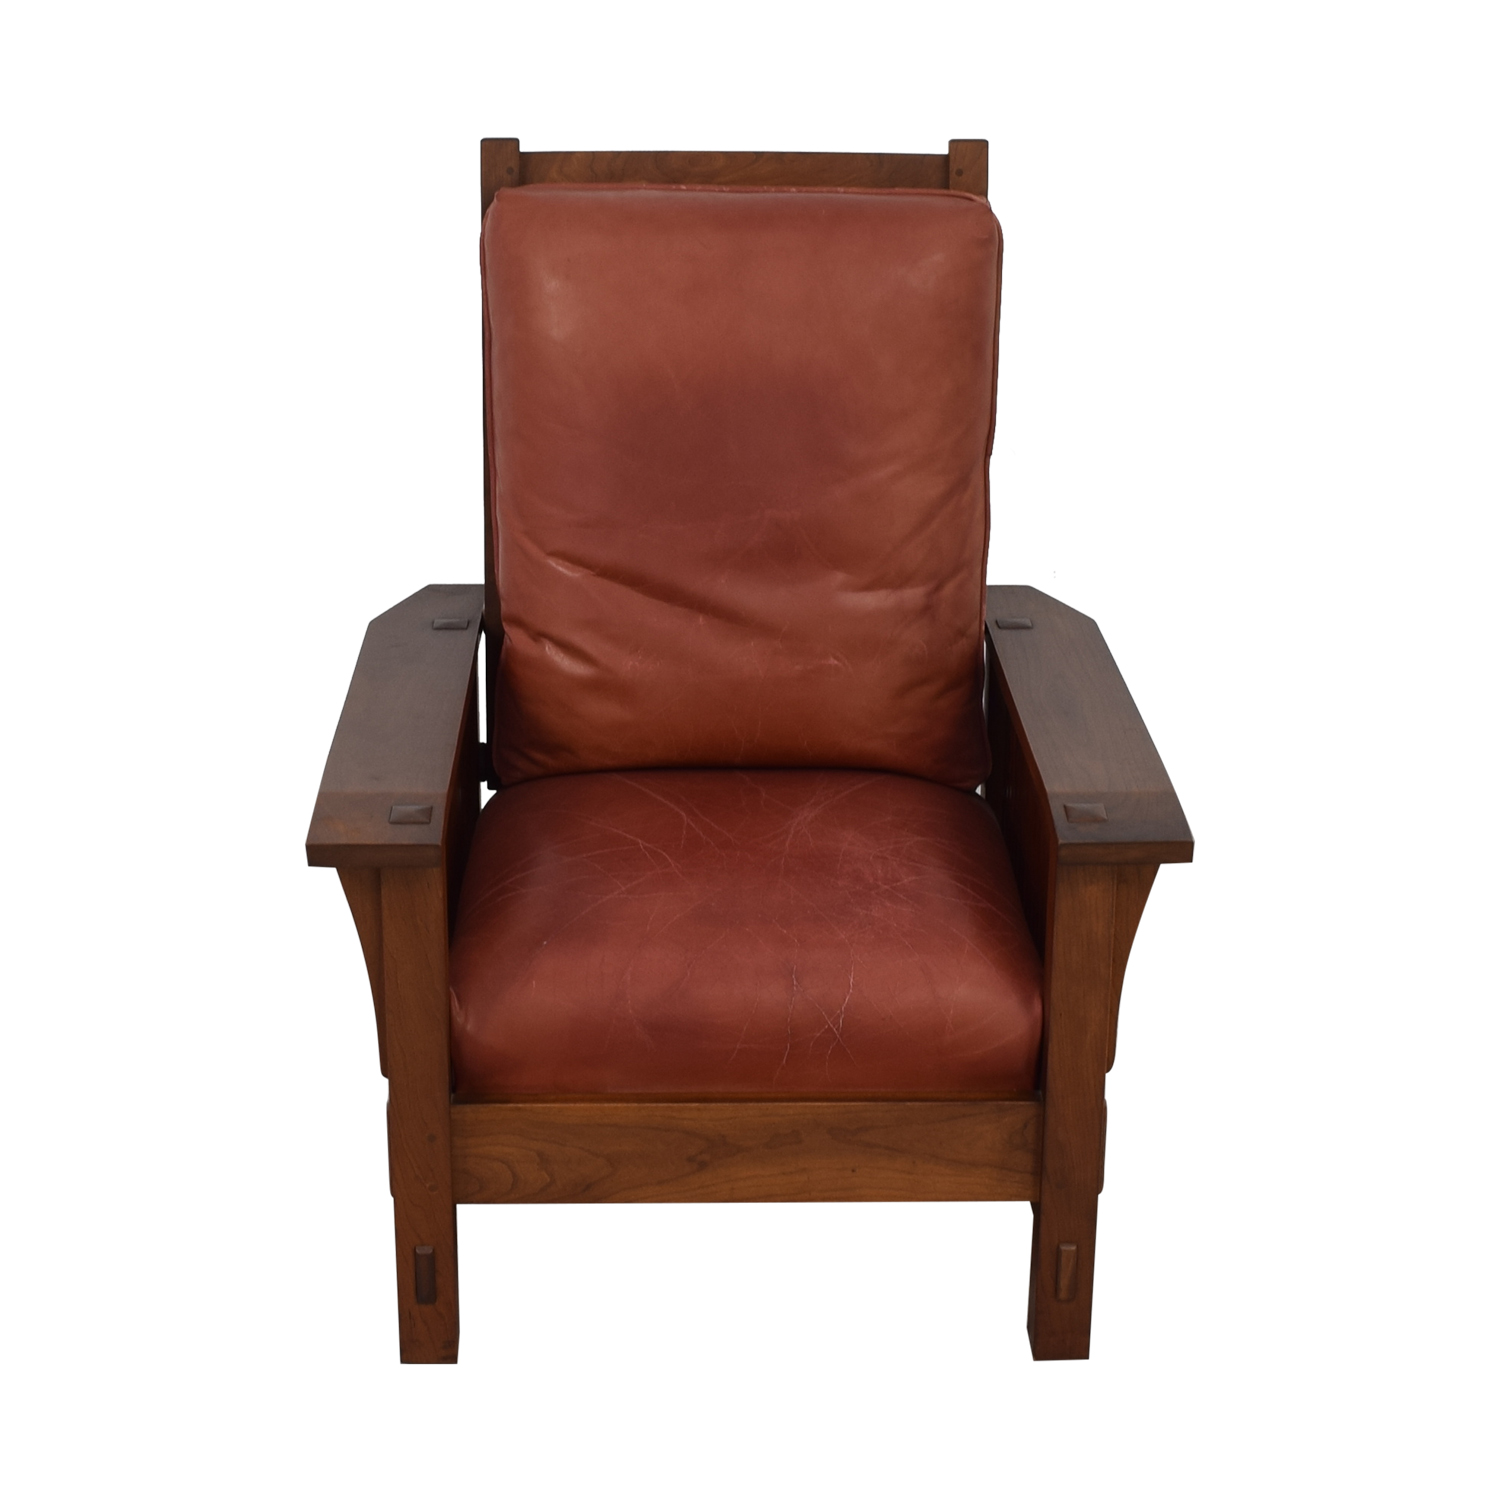 Stickley Furniture Stickley Spindle Morris Chair Chairs